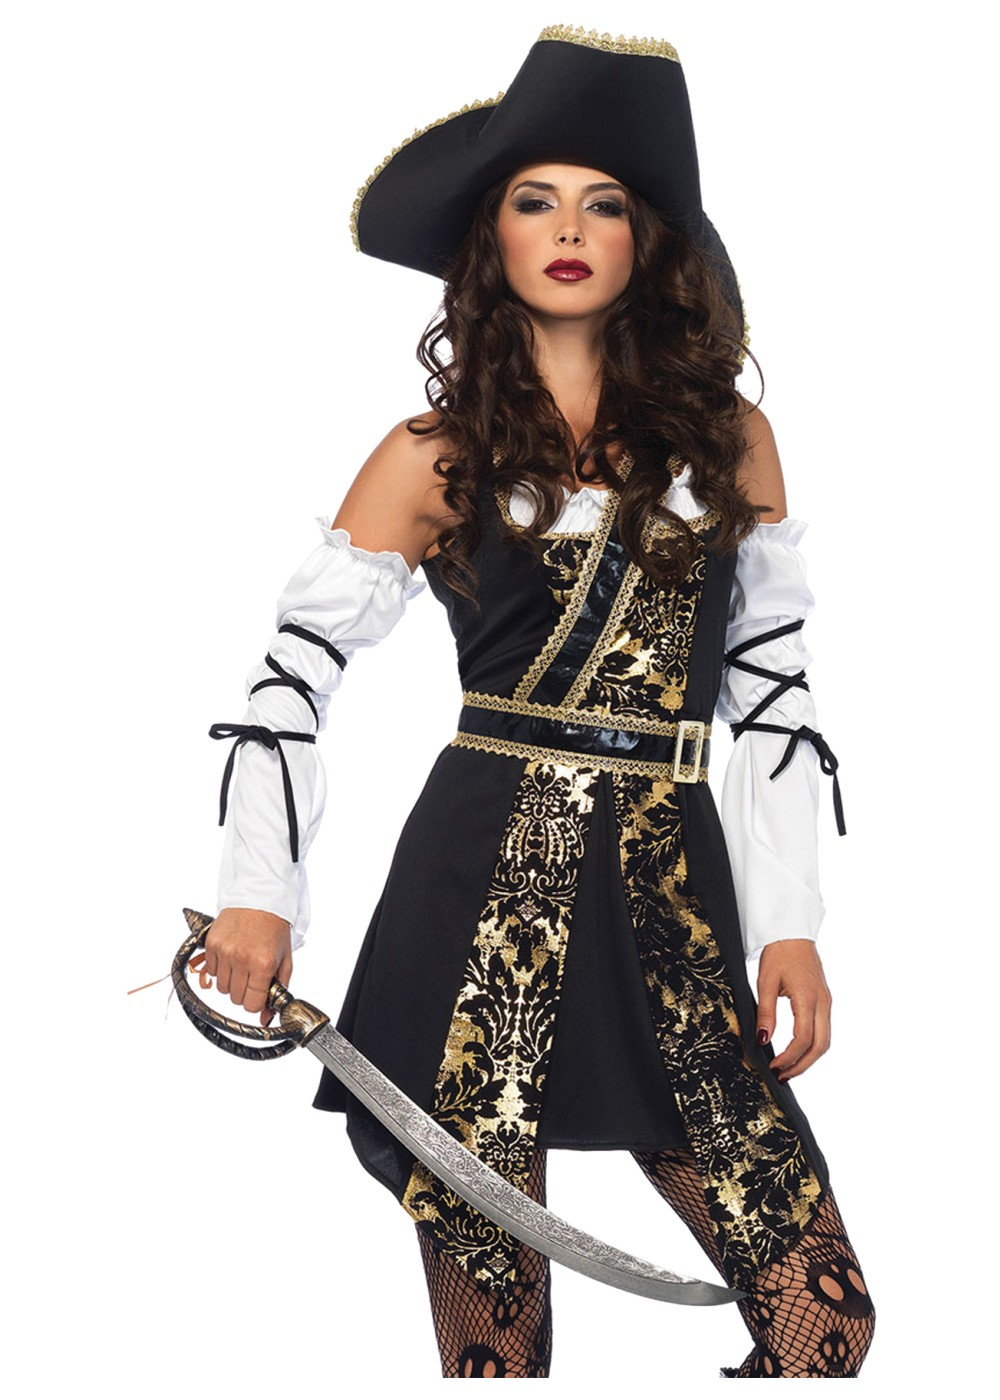 Buccaneer Pirate Women Costume